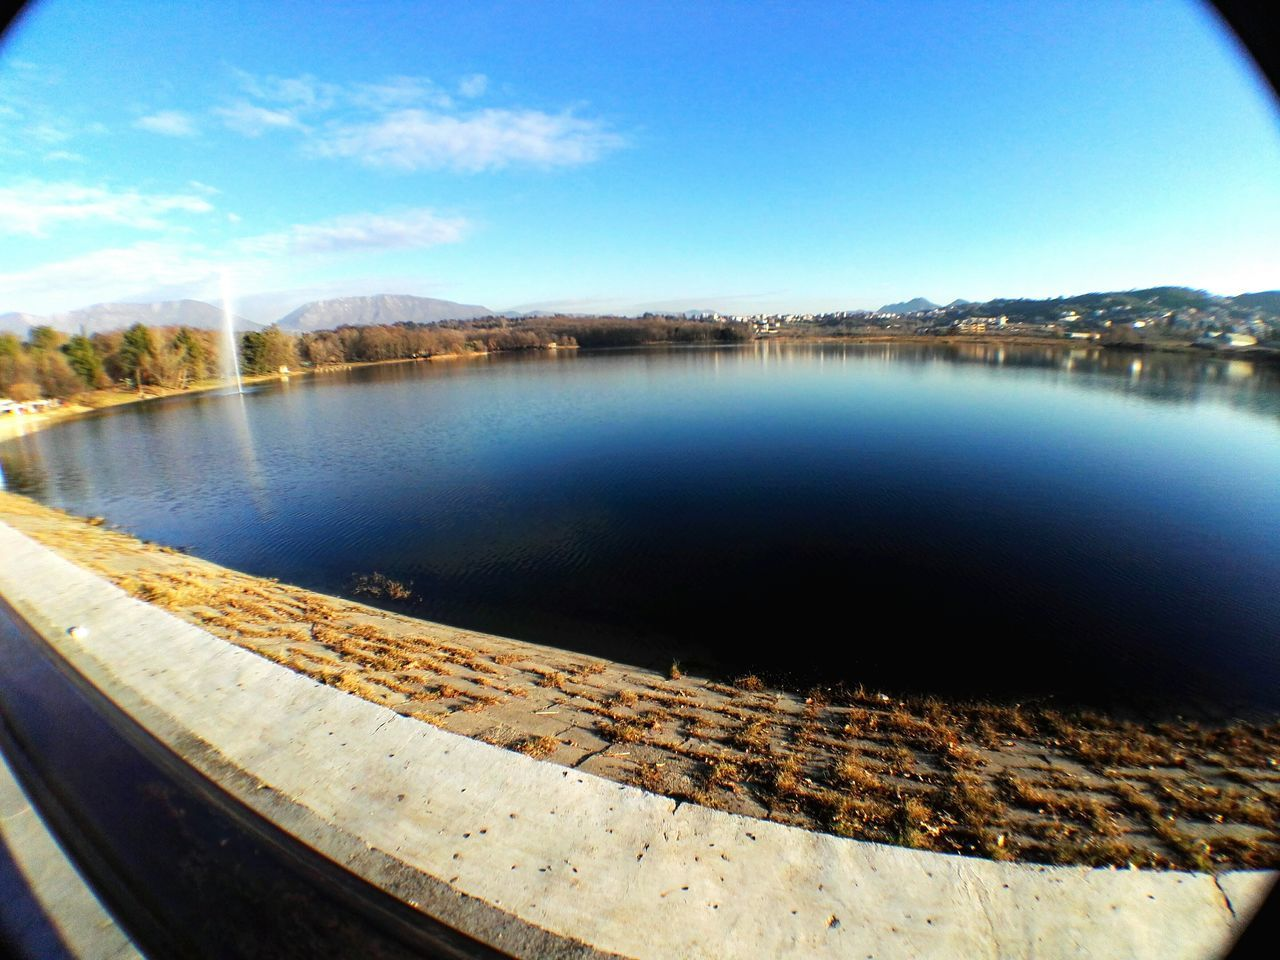 no people, water, day, built structure, scenics, lake, outdoors, sky, nature, beauty in nature, tree, architecture